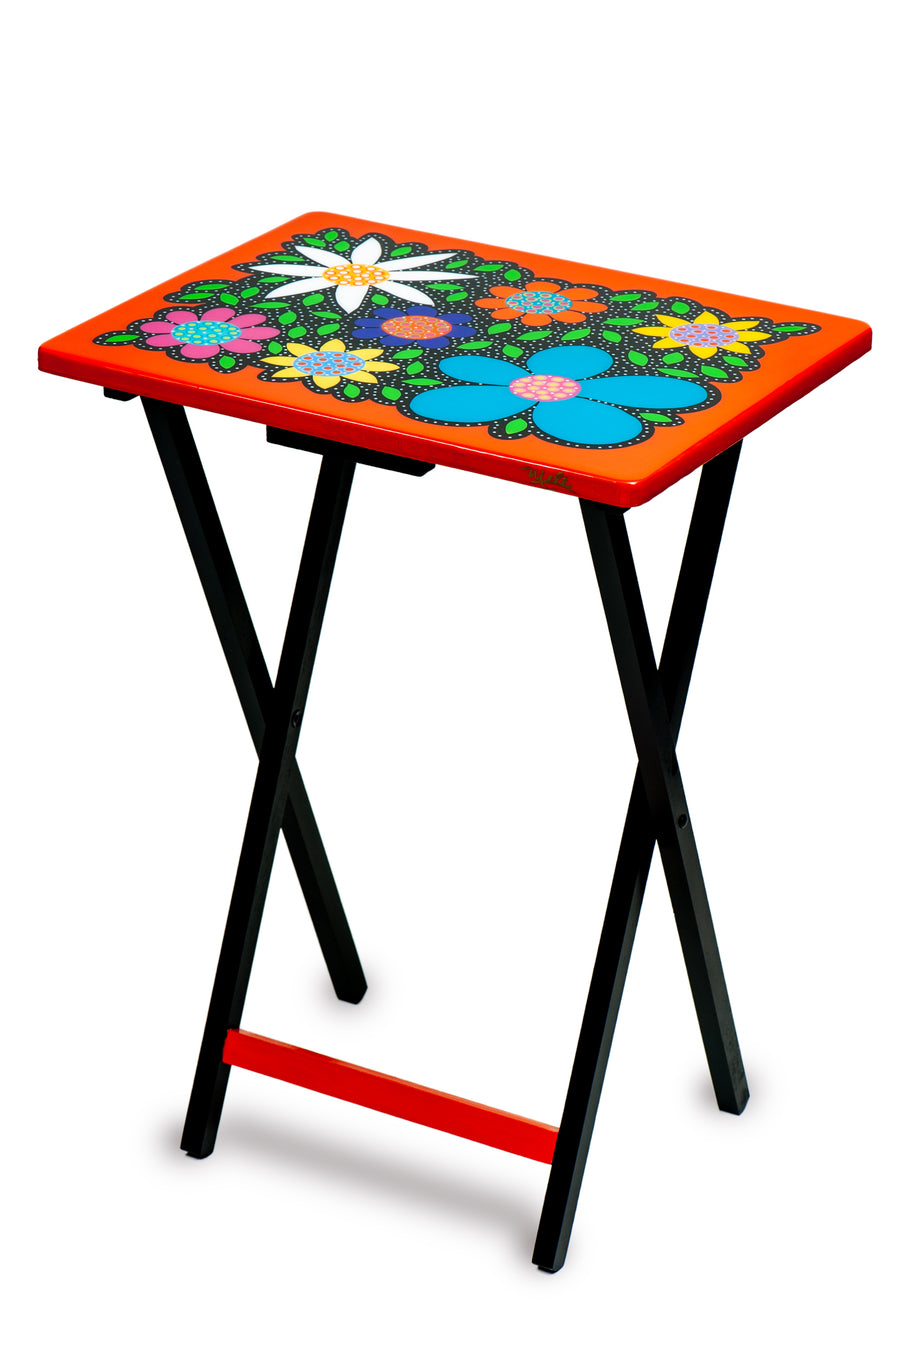 Folding Table - Orange - Art by Mele